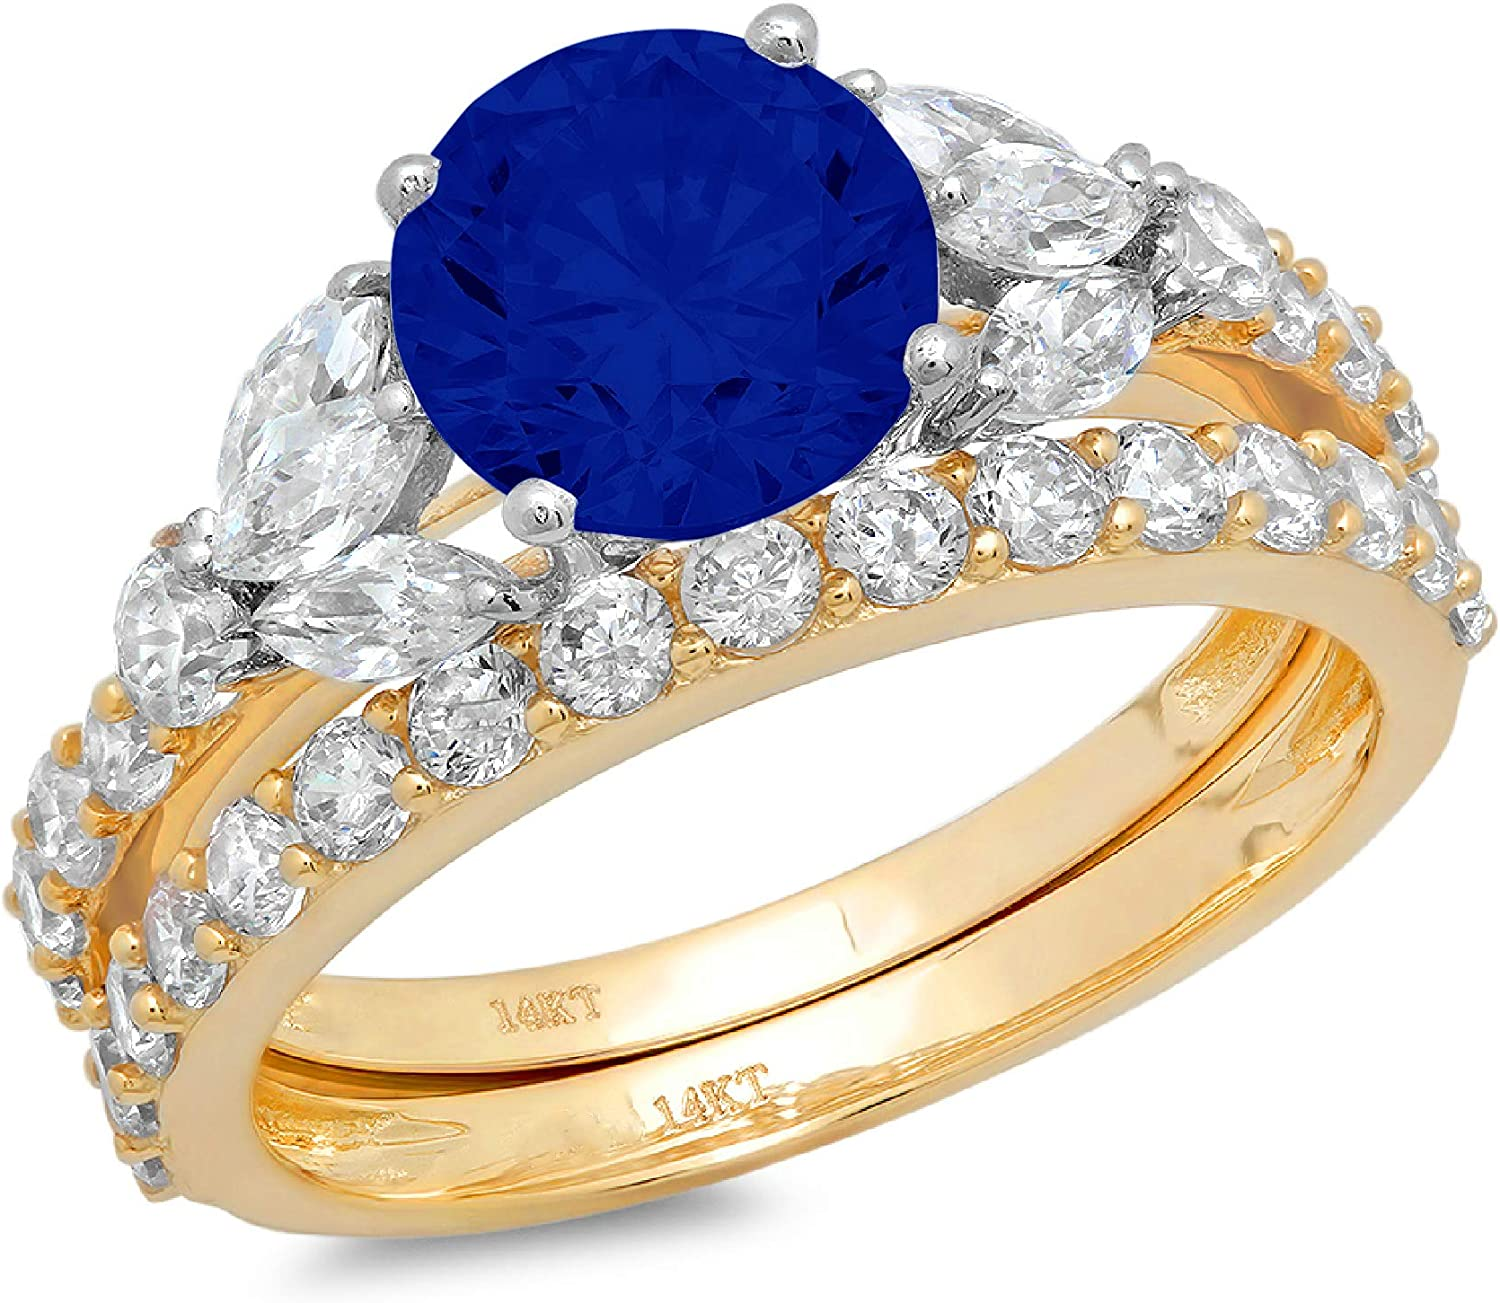 2.66ct Round Marquise Cut Solitaire 3 stone With Accent Ideal Flawless Simulated CZ Blue Sapphire Engagement Promise Designer Anniversary Wedding Bridal ring band set 14k 2 tone Gold